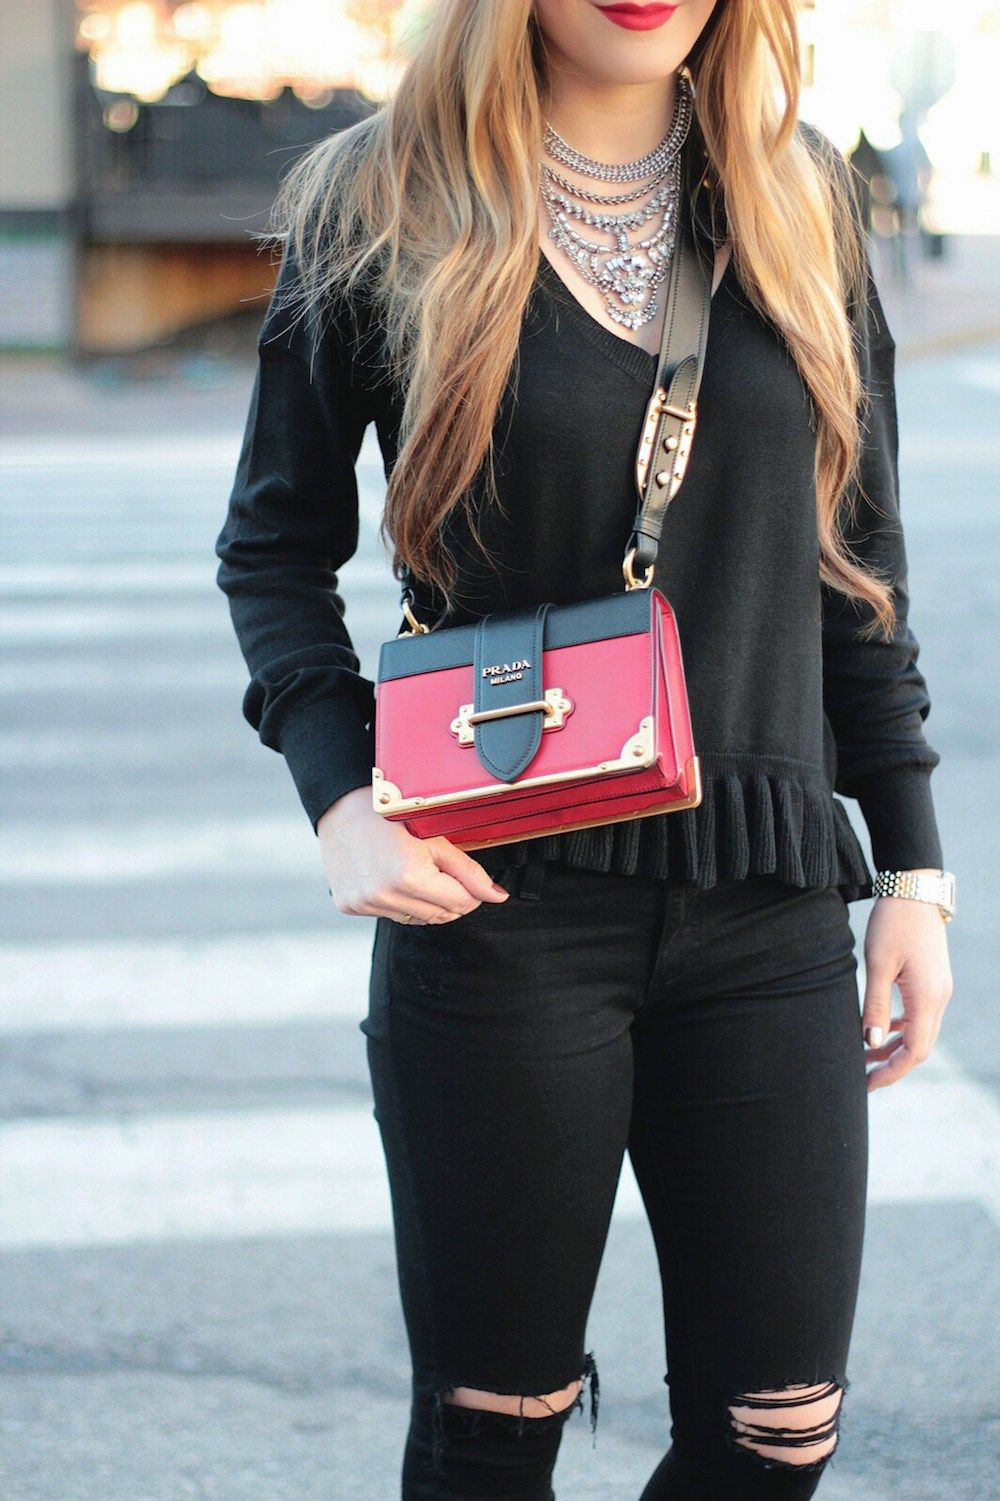 73c501d5a9c00e Black and Red, City style, Prada Cahier Bag, Ruffle Sweater, Rachel  Puccetti Between Two Coasts